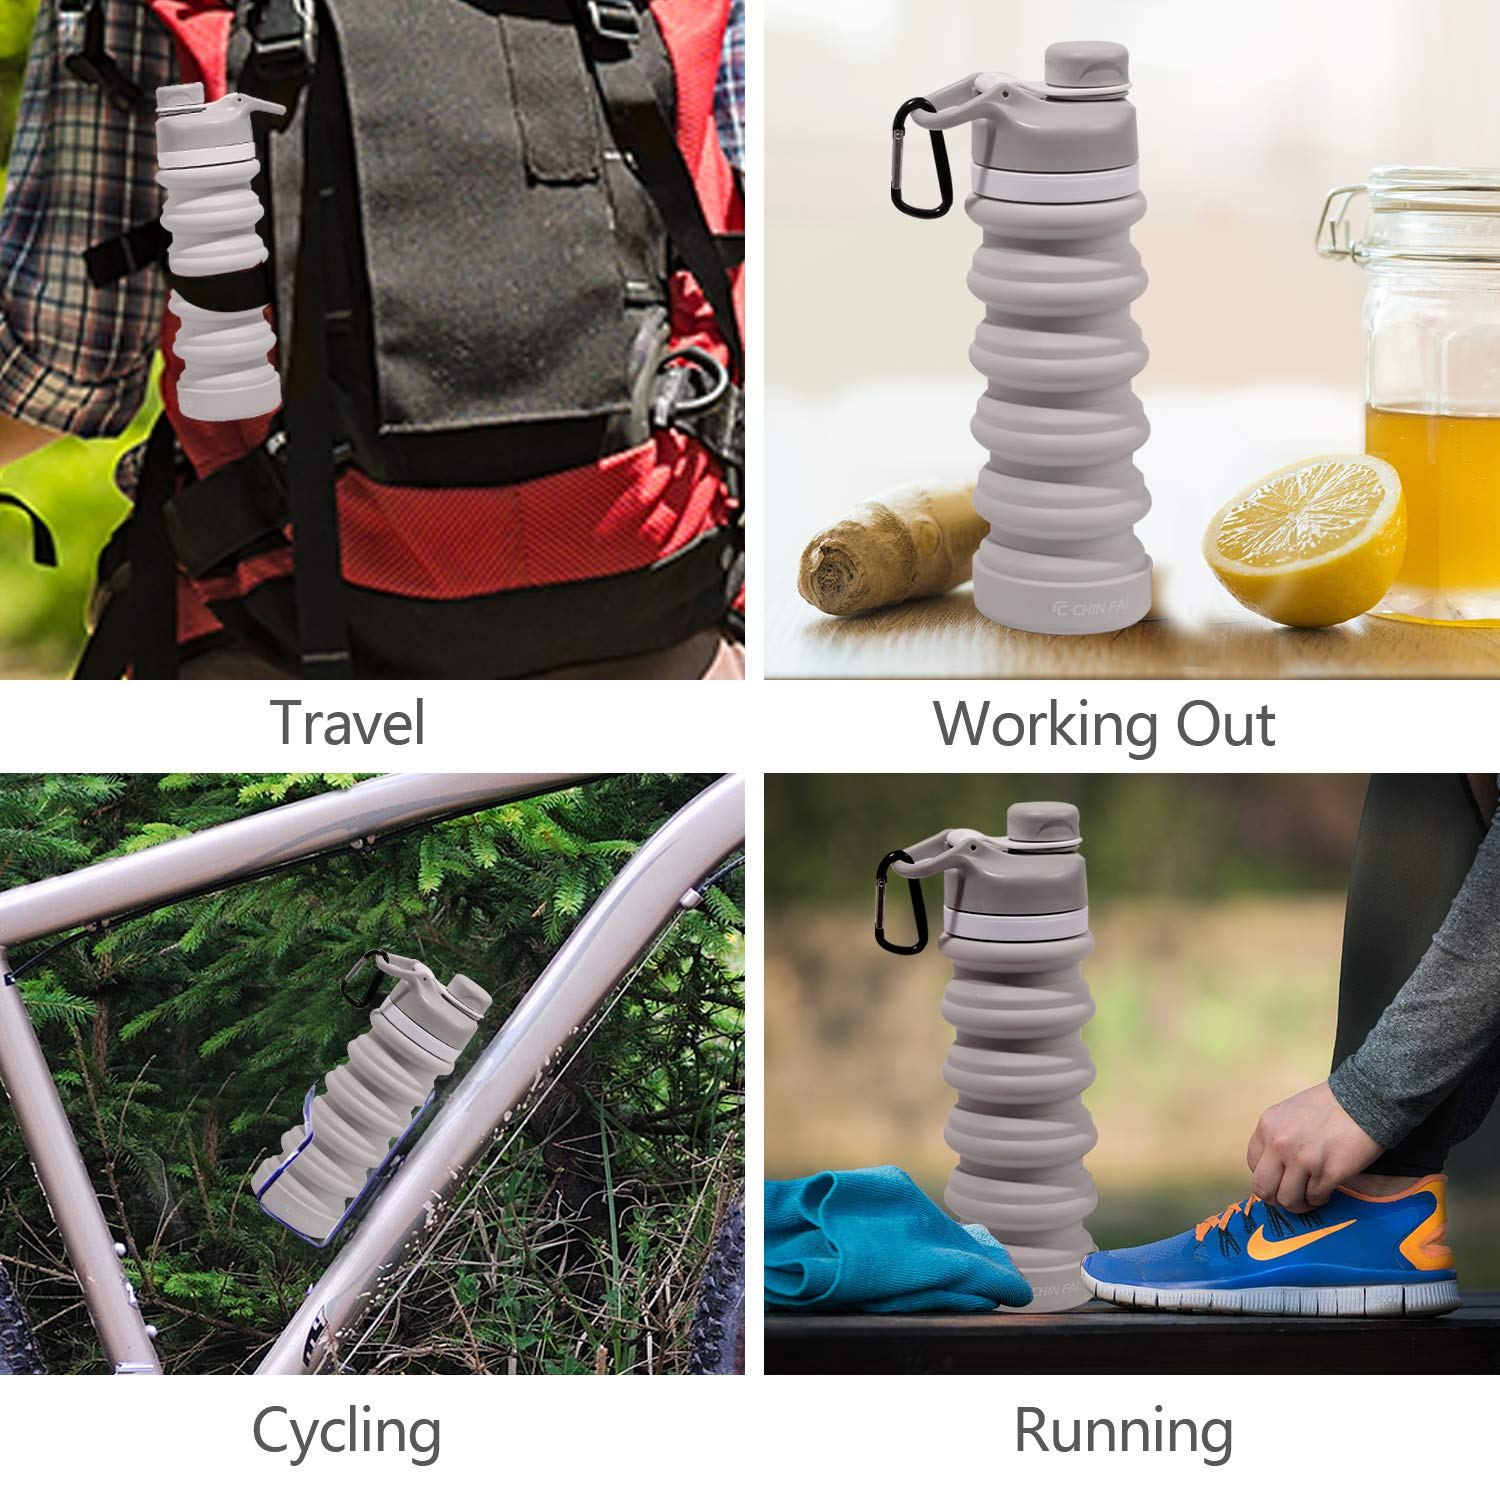 18.6 Oz CHINFAI Collapsible Silicone Water Bottle//Portable Travel Sport Water Bottle Folding Save Space BPA Free 550 mL